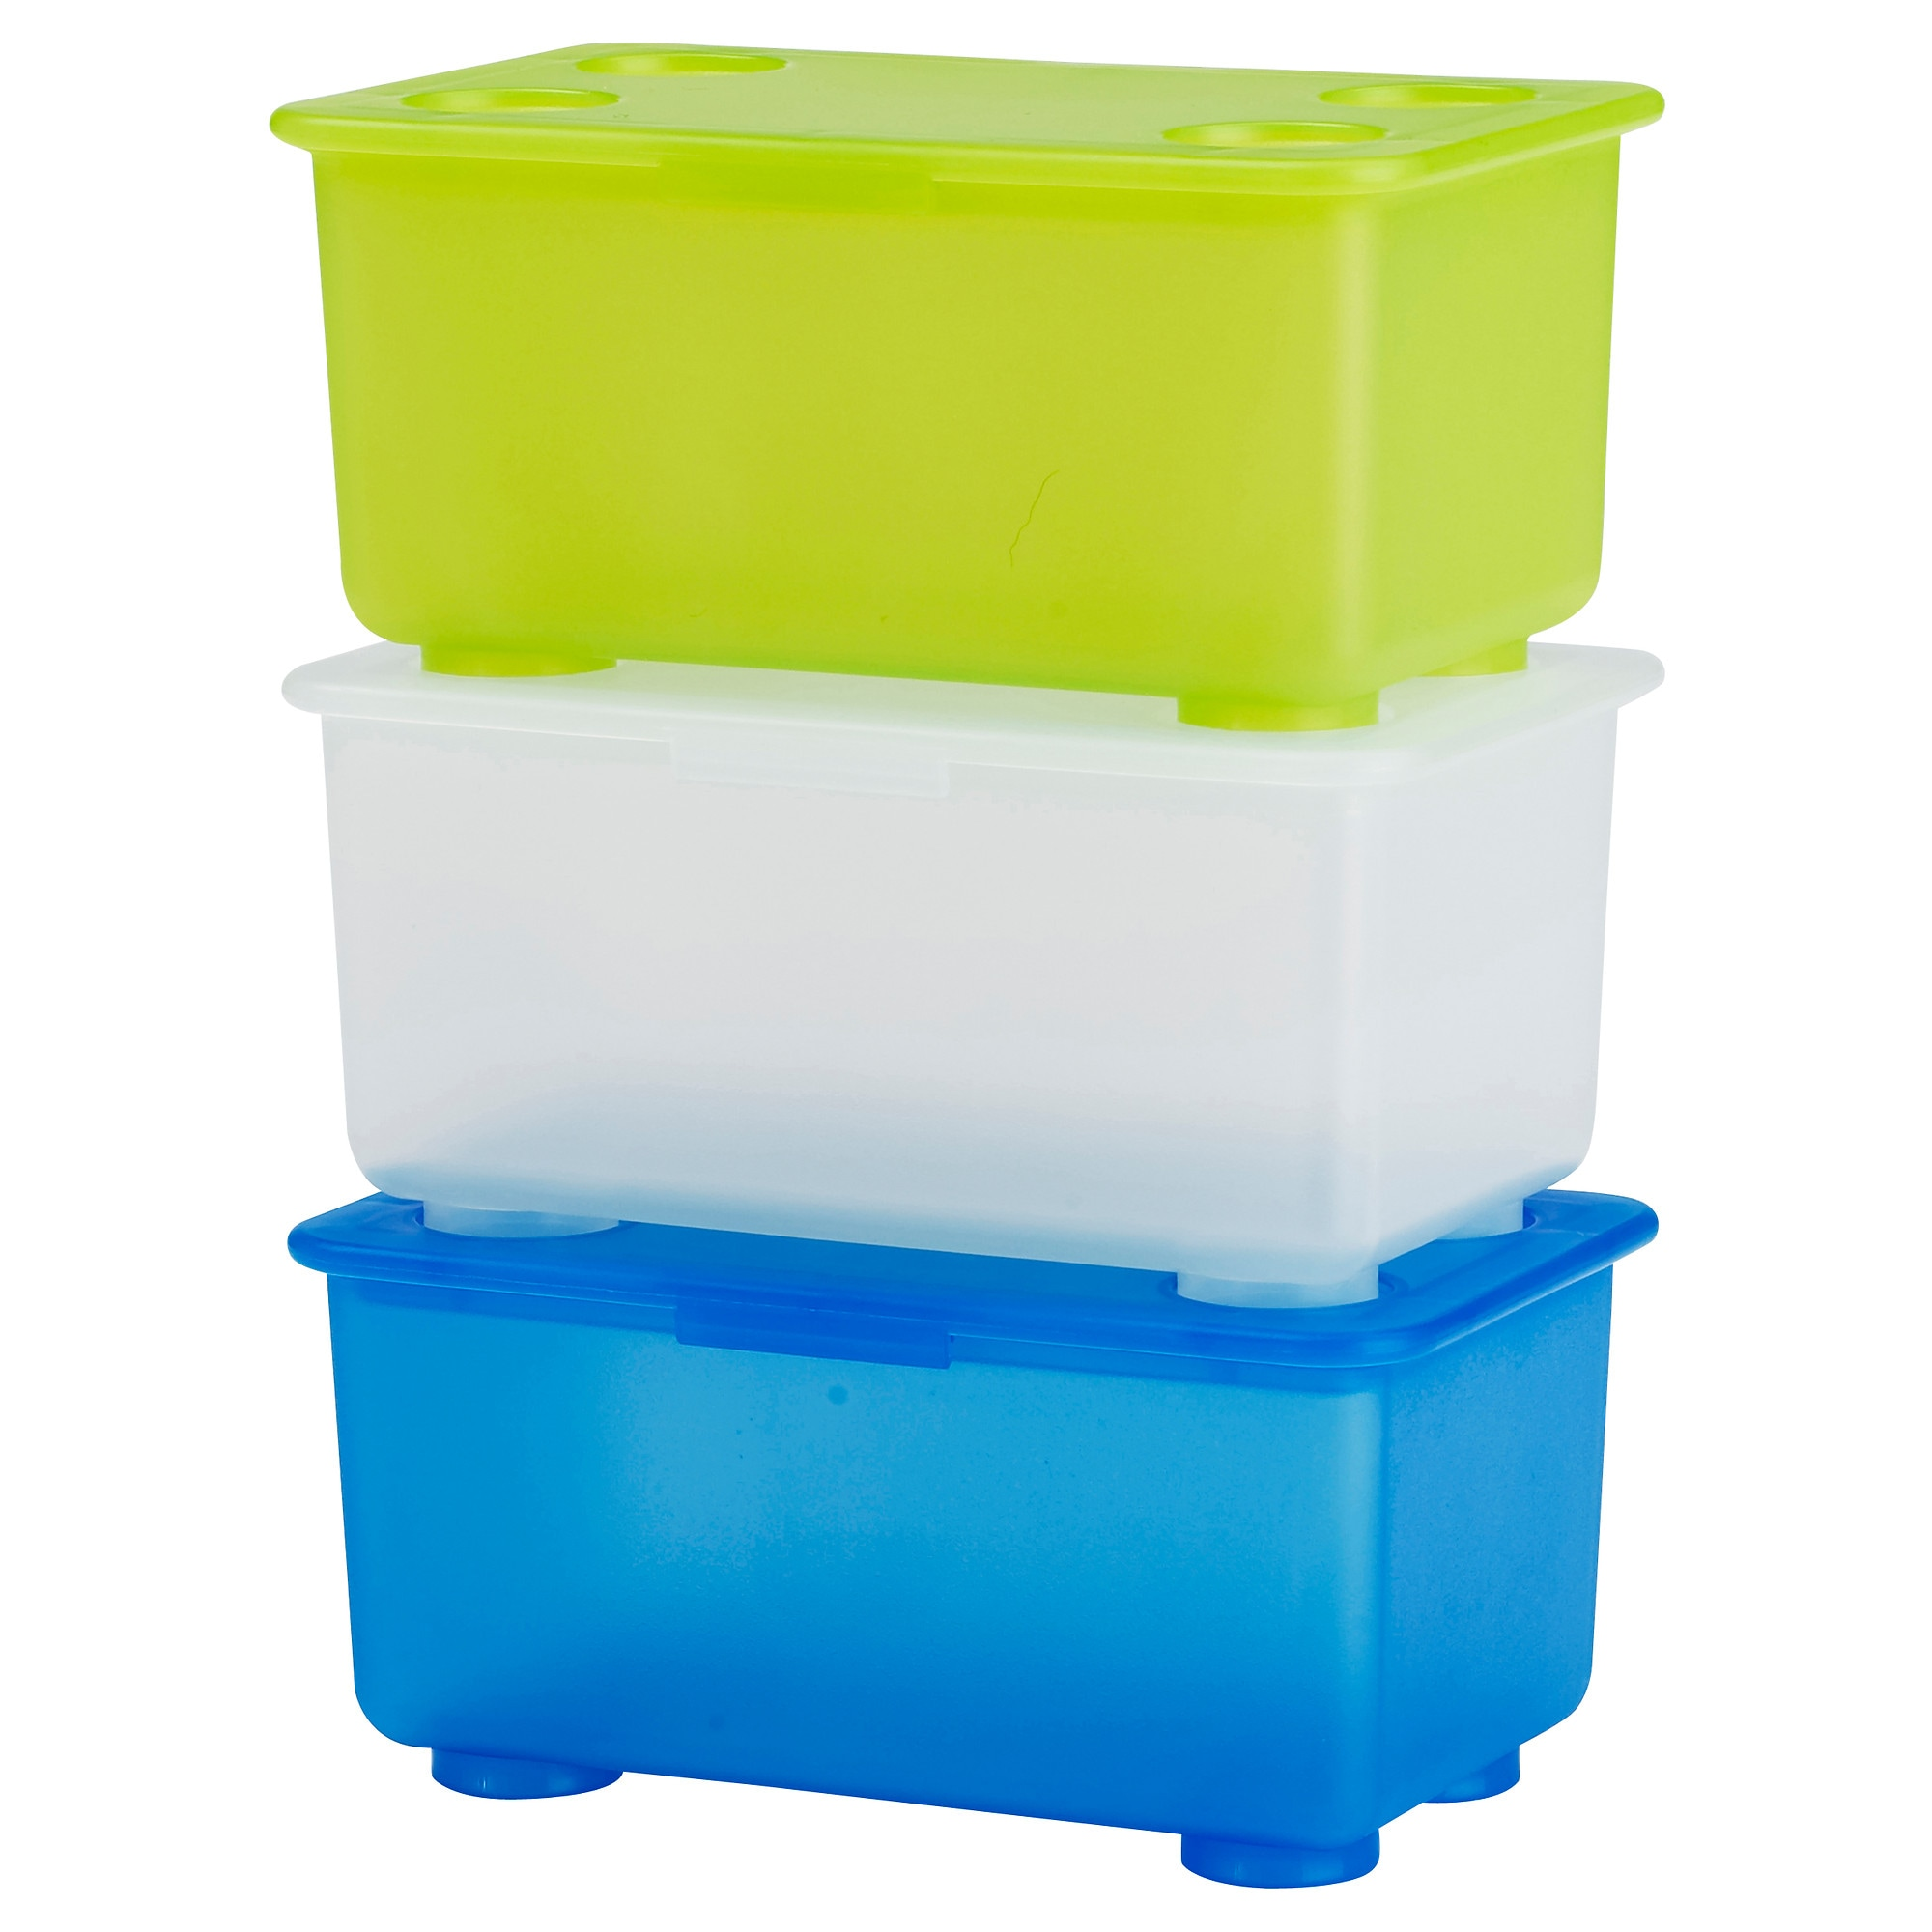 Uncategorized Storage Containers Ikea childrens storage boxes baskets ikea glis box with lid whitelight green blue length 7 width